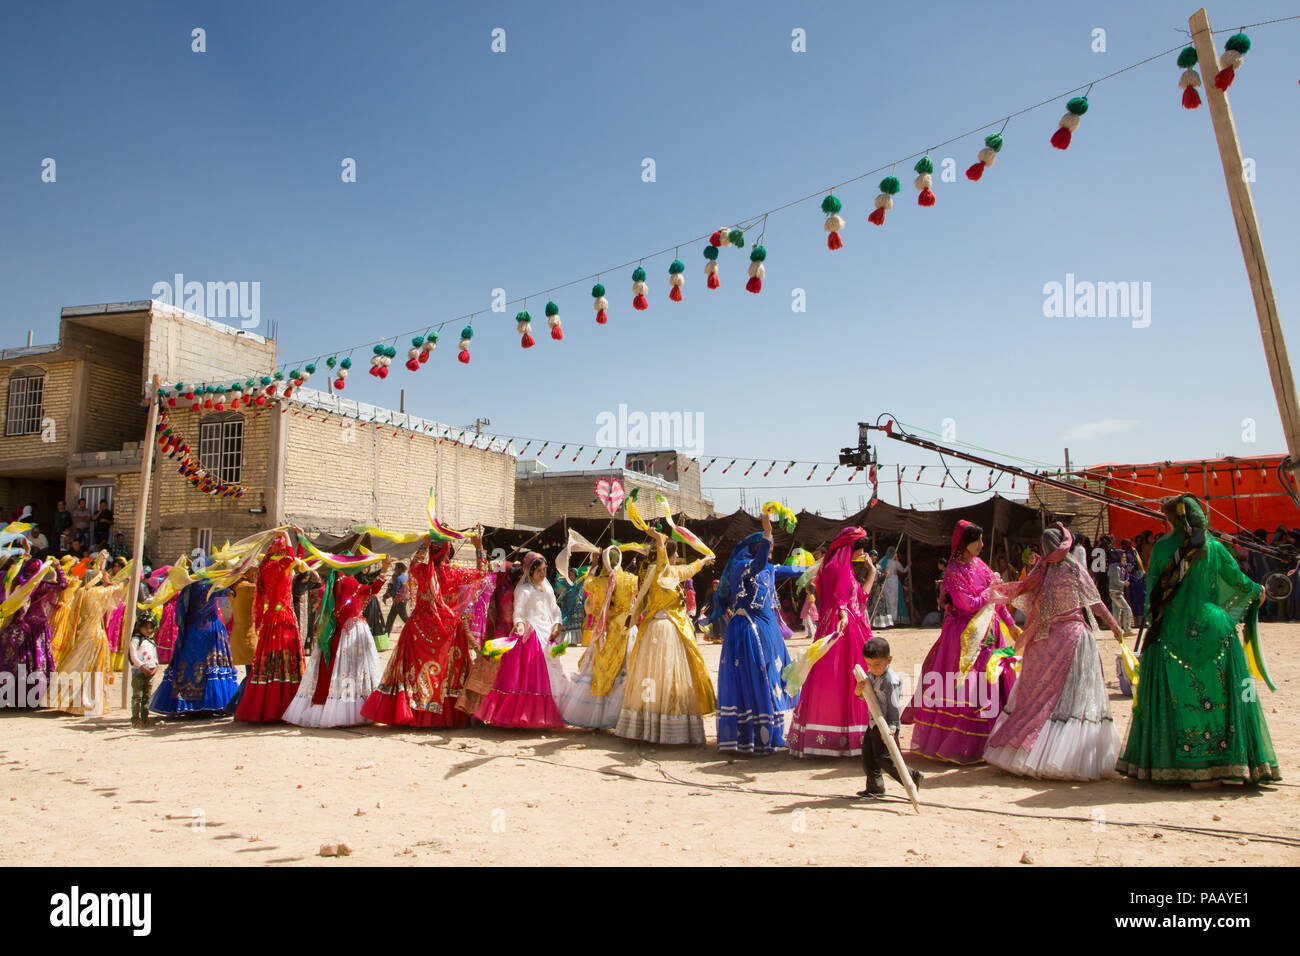 Qashqai traditional dances during wedding ceremony, nomad people, Iran - Stock Image